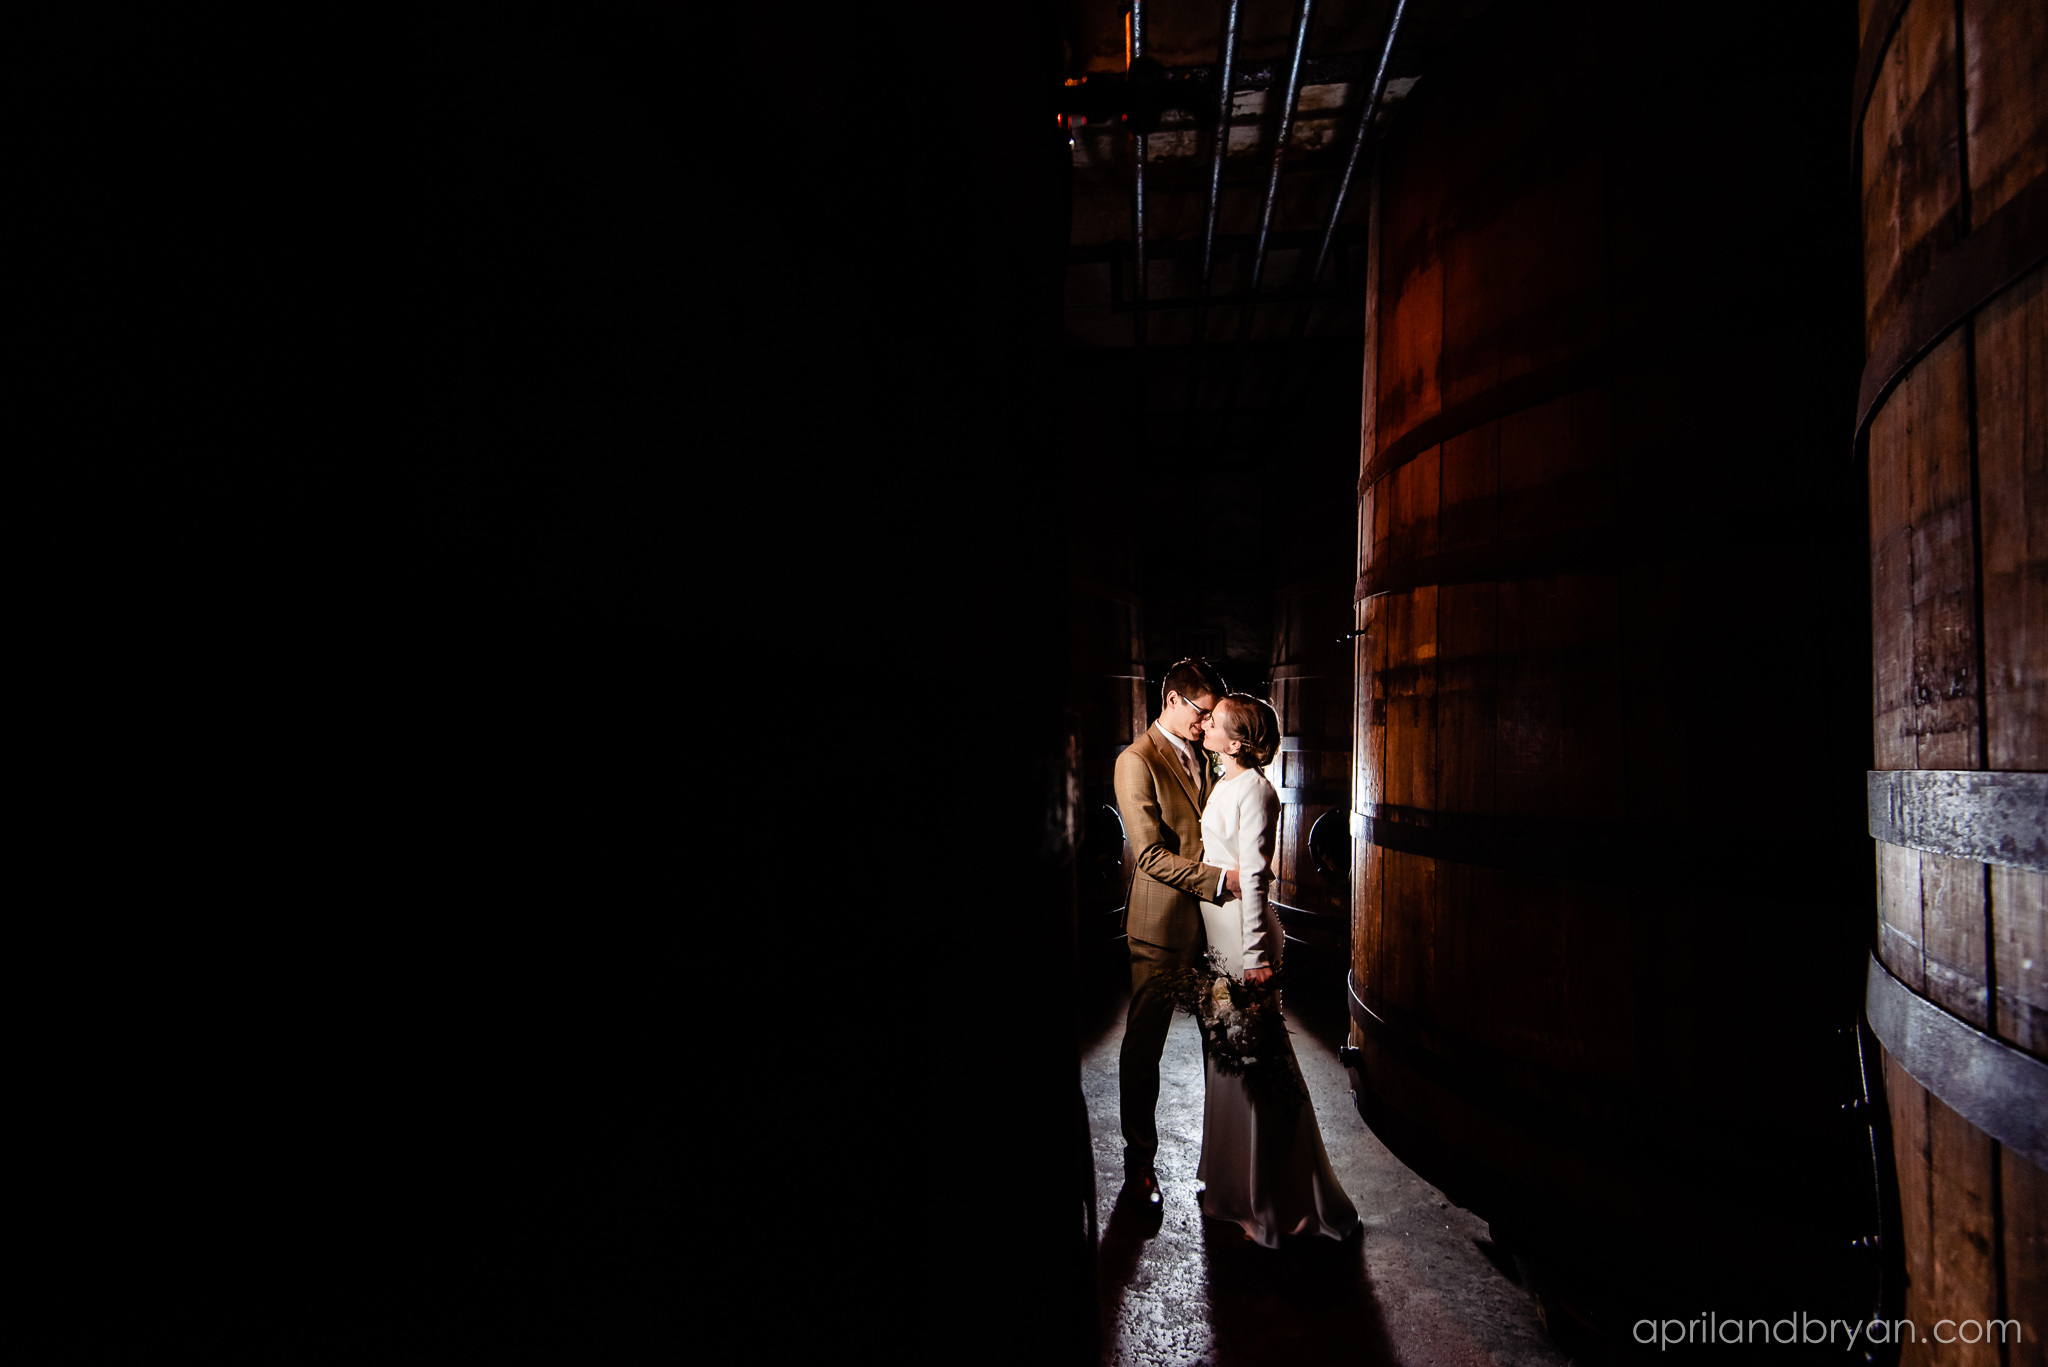 Sneaking away to the aging barrels, the newlyweds steal a kiss. Hannah and Ethan Farrell had their classic romantic styled wedding held at their home in Mount Joy, followed by a reception at the catacombs underneath Bube's Brewery. Photographed by April & Bryan Photography, the couple had the opportunity to showcase their early 1900s style and accommodate a small guest list. Featured on Dream Weddings.